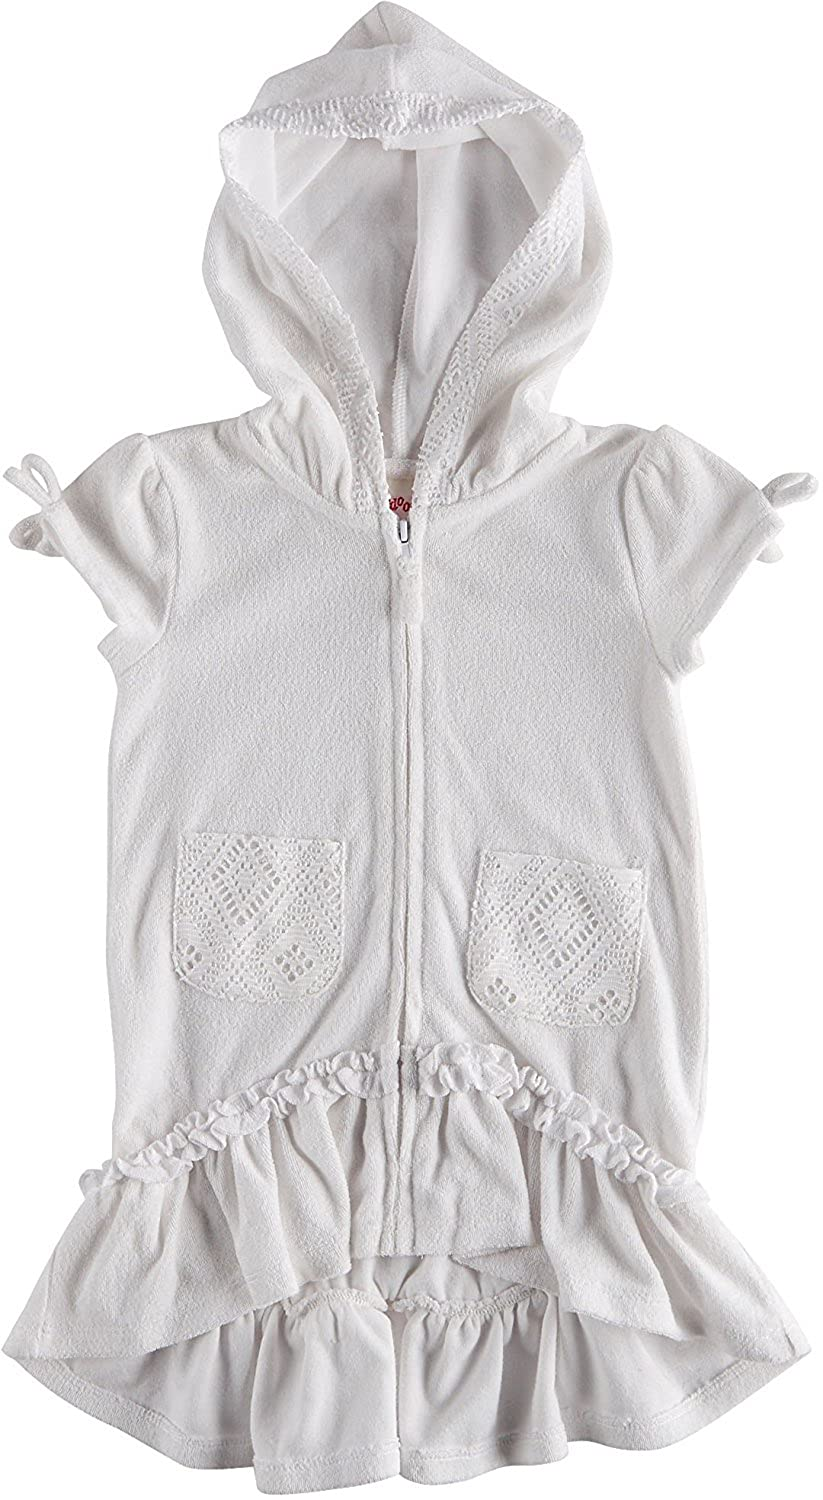 Flapdoodles Girls Terry Hooded Swimsuit Beach Cover up